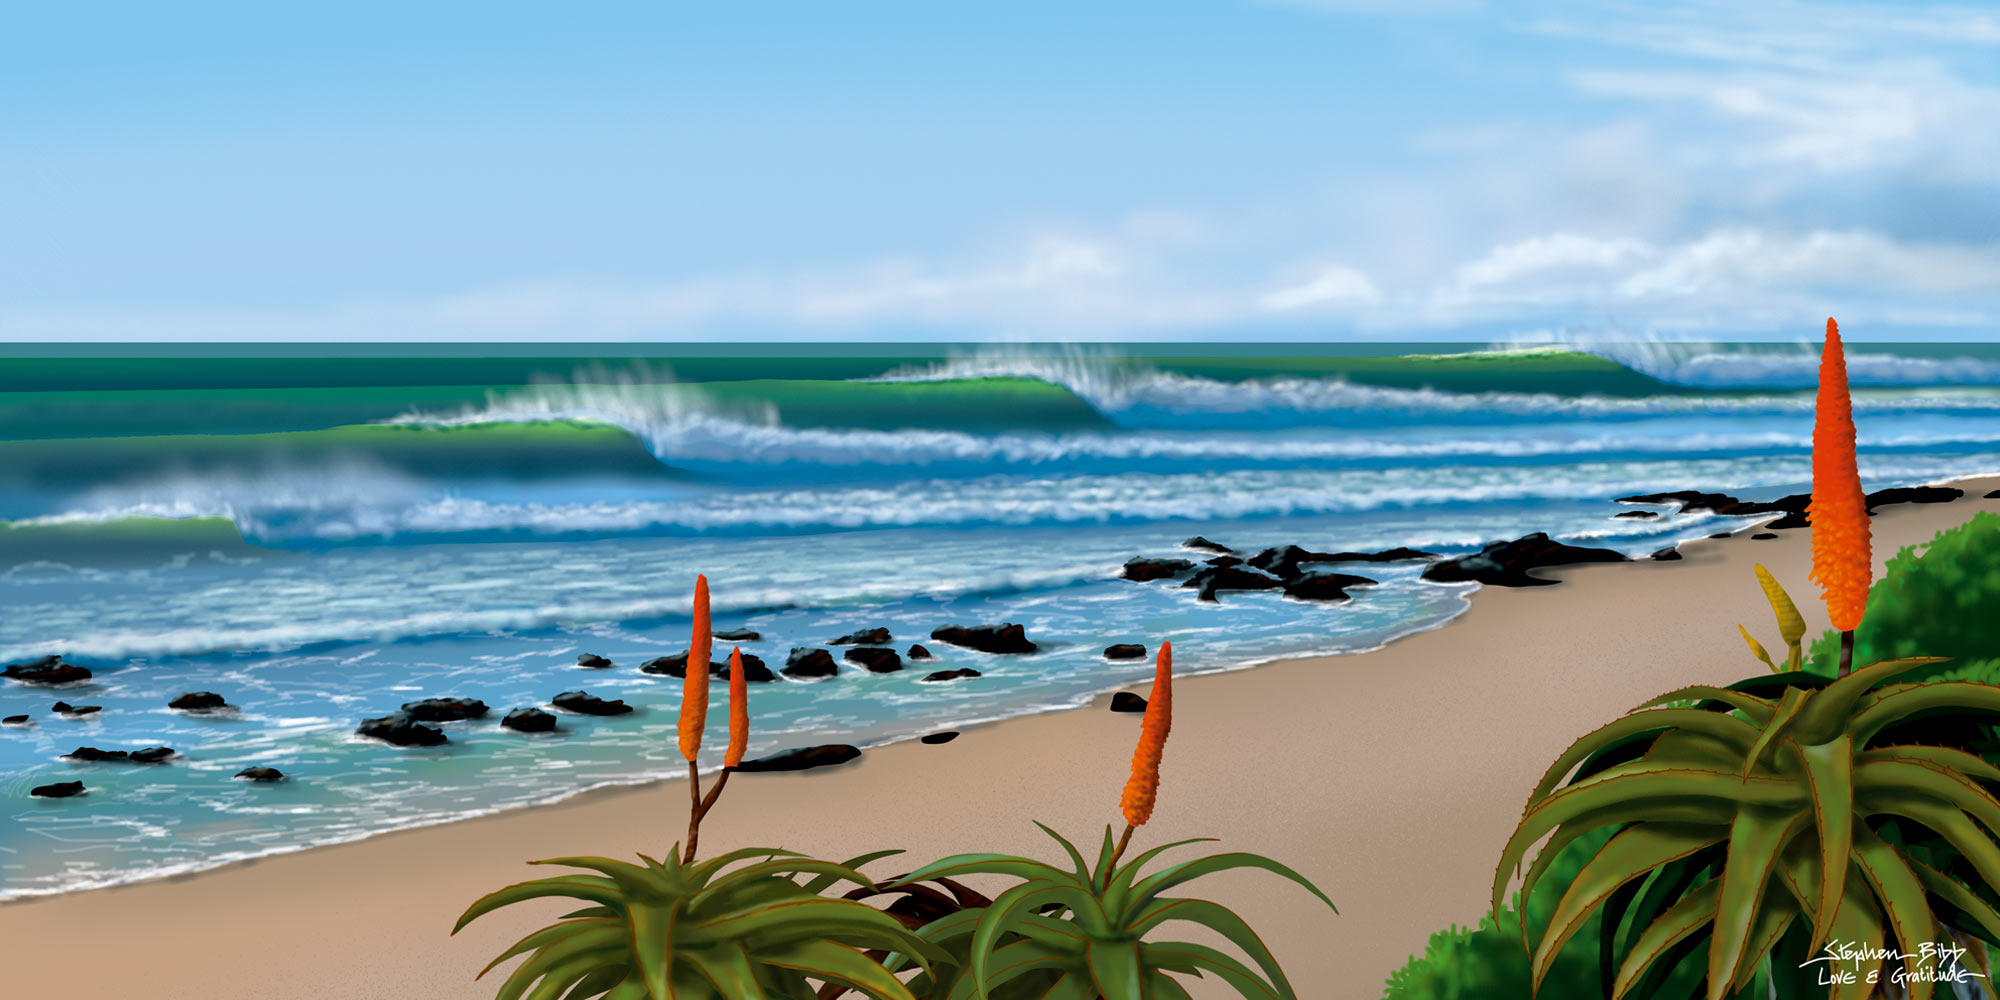 A digital Illustration of Supertubes, J-Bay, South Africa. Created with the digital Airbrush and the wacom tablet.